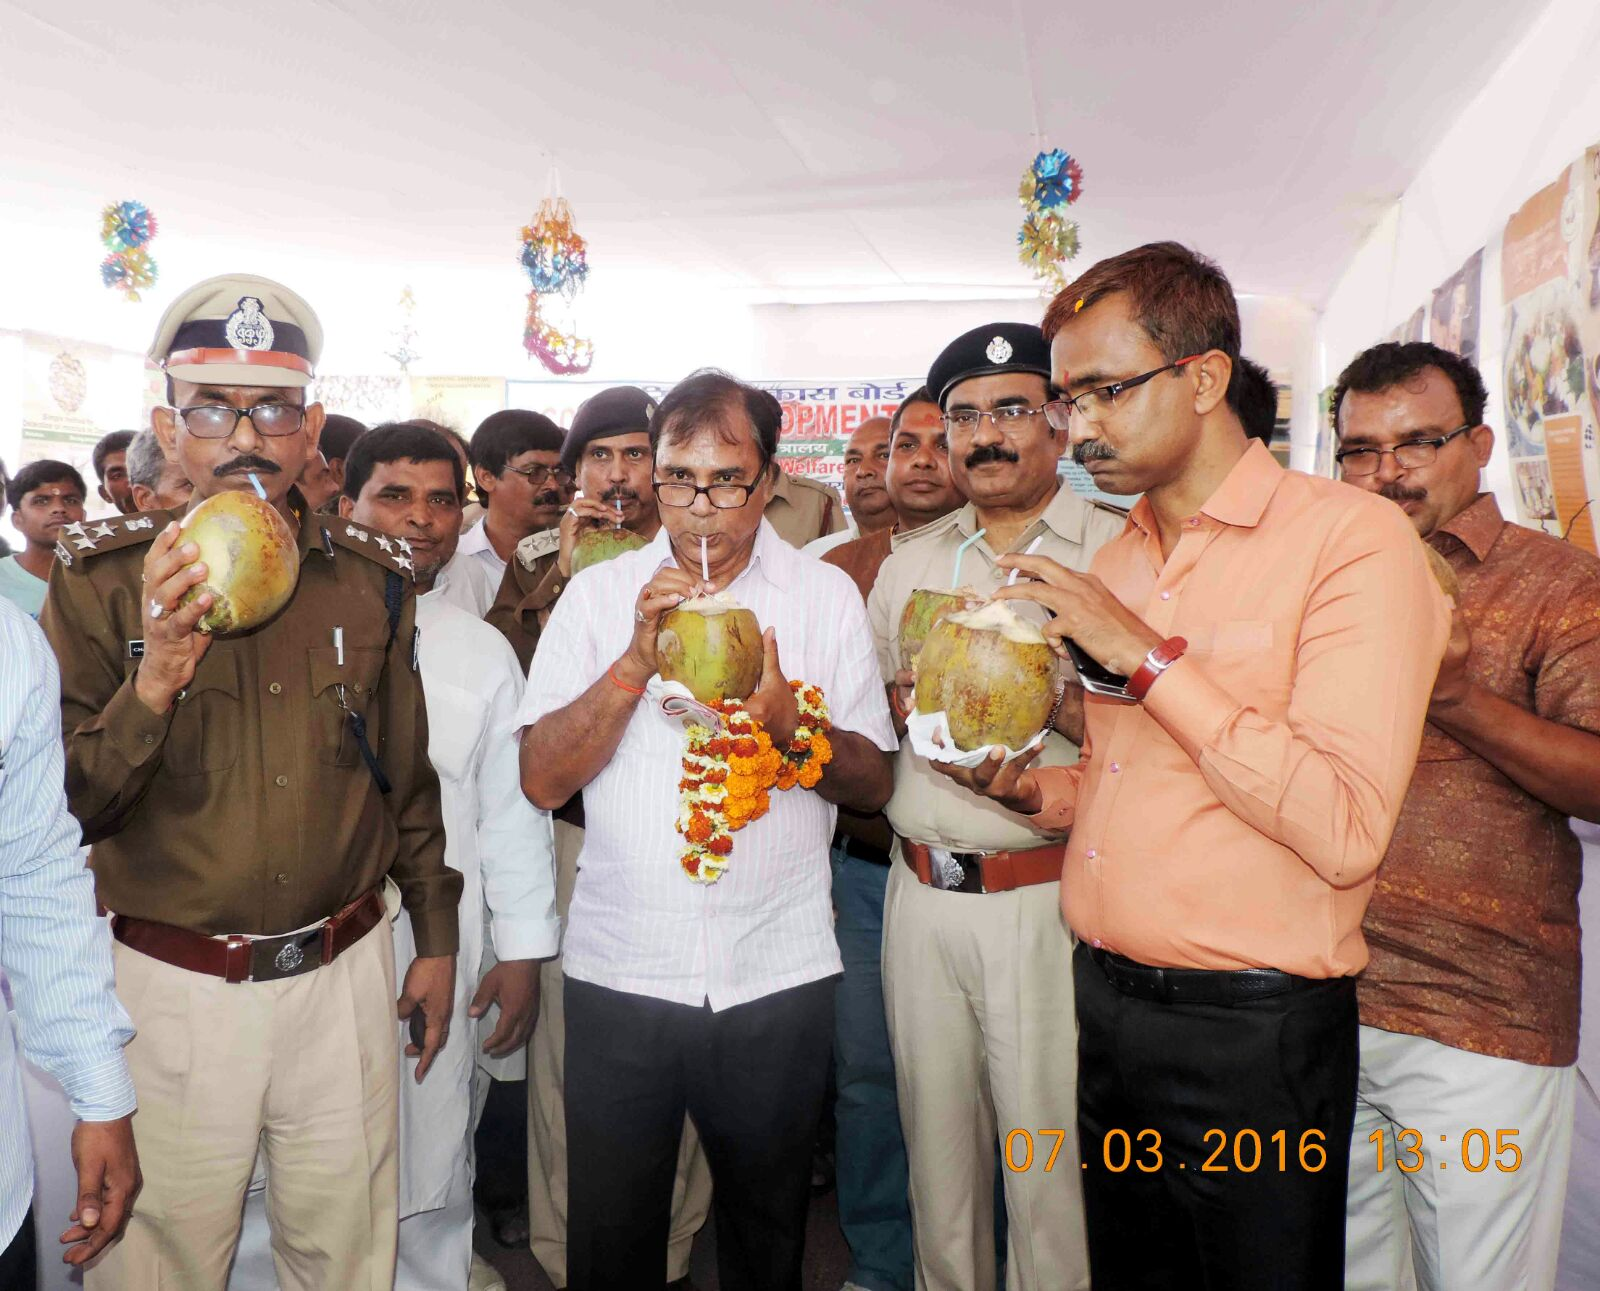 From L to R - DIG Chandrika Prasad, Dr. Madhepuri, SP Vikas Kumar, DM Md. Sohail, SDM Sanjay Kumar Nirala enjoying coconut water in Mela campus after inauguration of Coconut Stall.